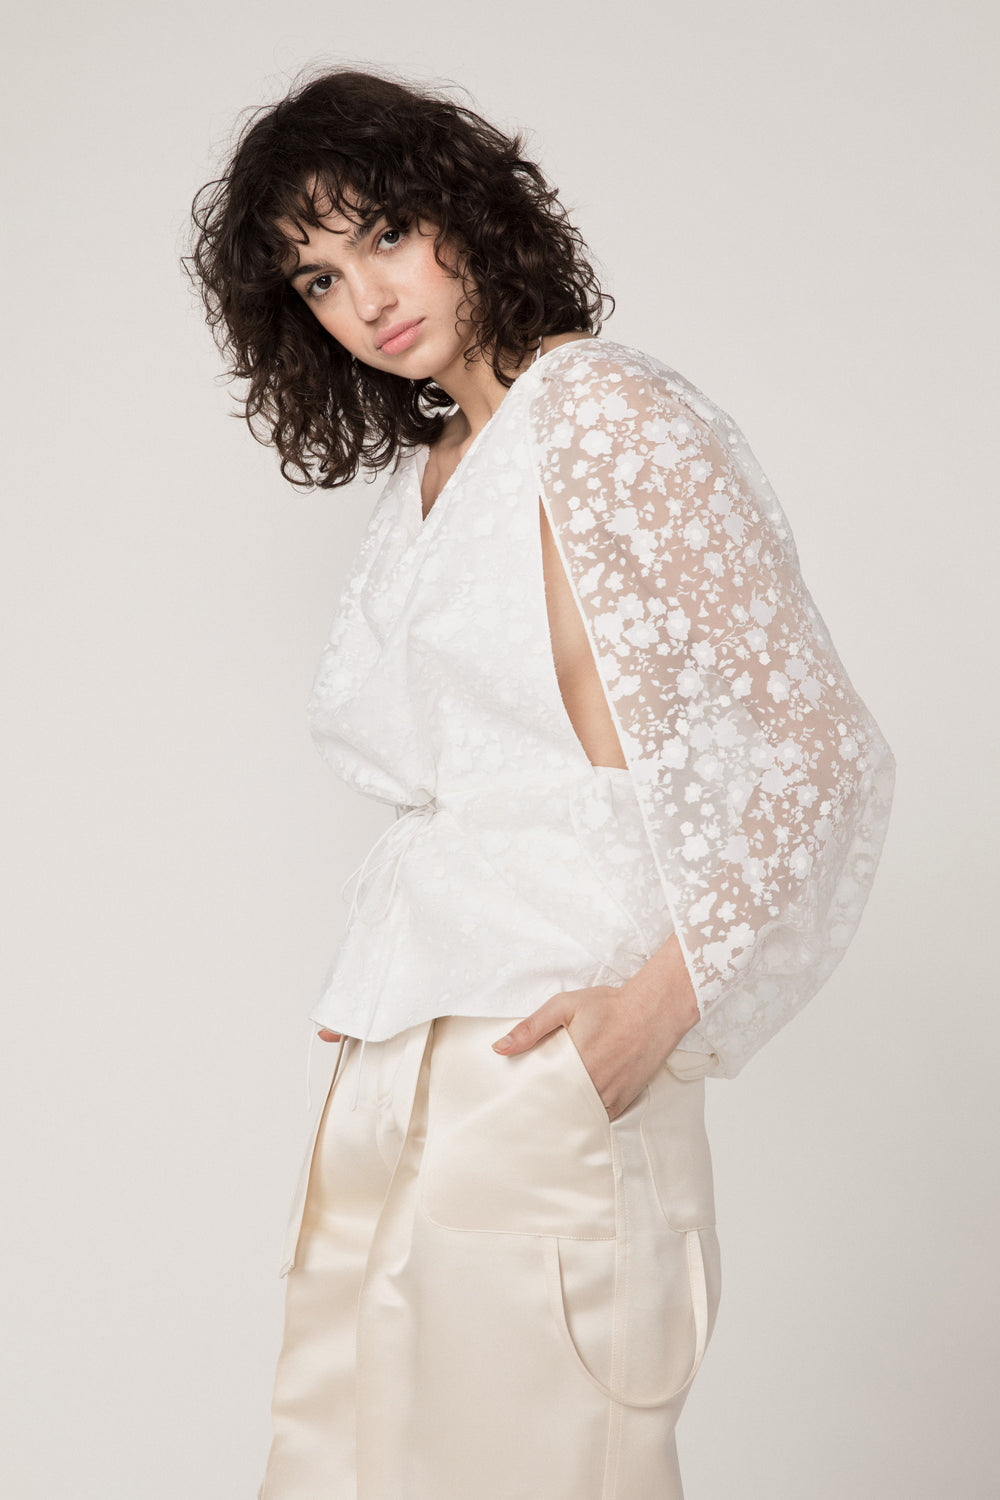 Rosie Assoulin Pre-Fall 2019 Cape Top. Drapey top with sheer sleeves. Drawstring waist. Scooped open back. White. 76% Cotton, 22% Polyester, 2% Elastane. Sizes XS - L.